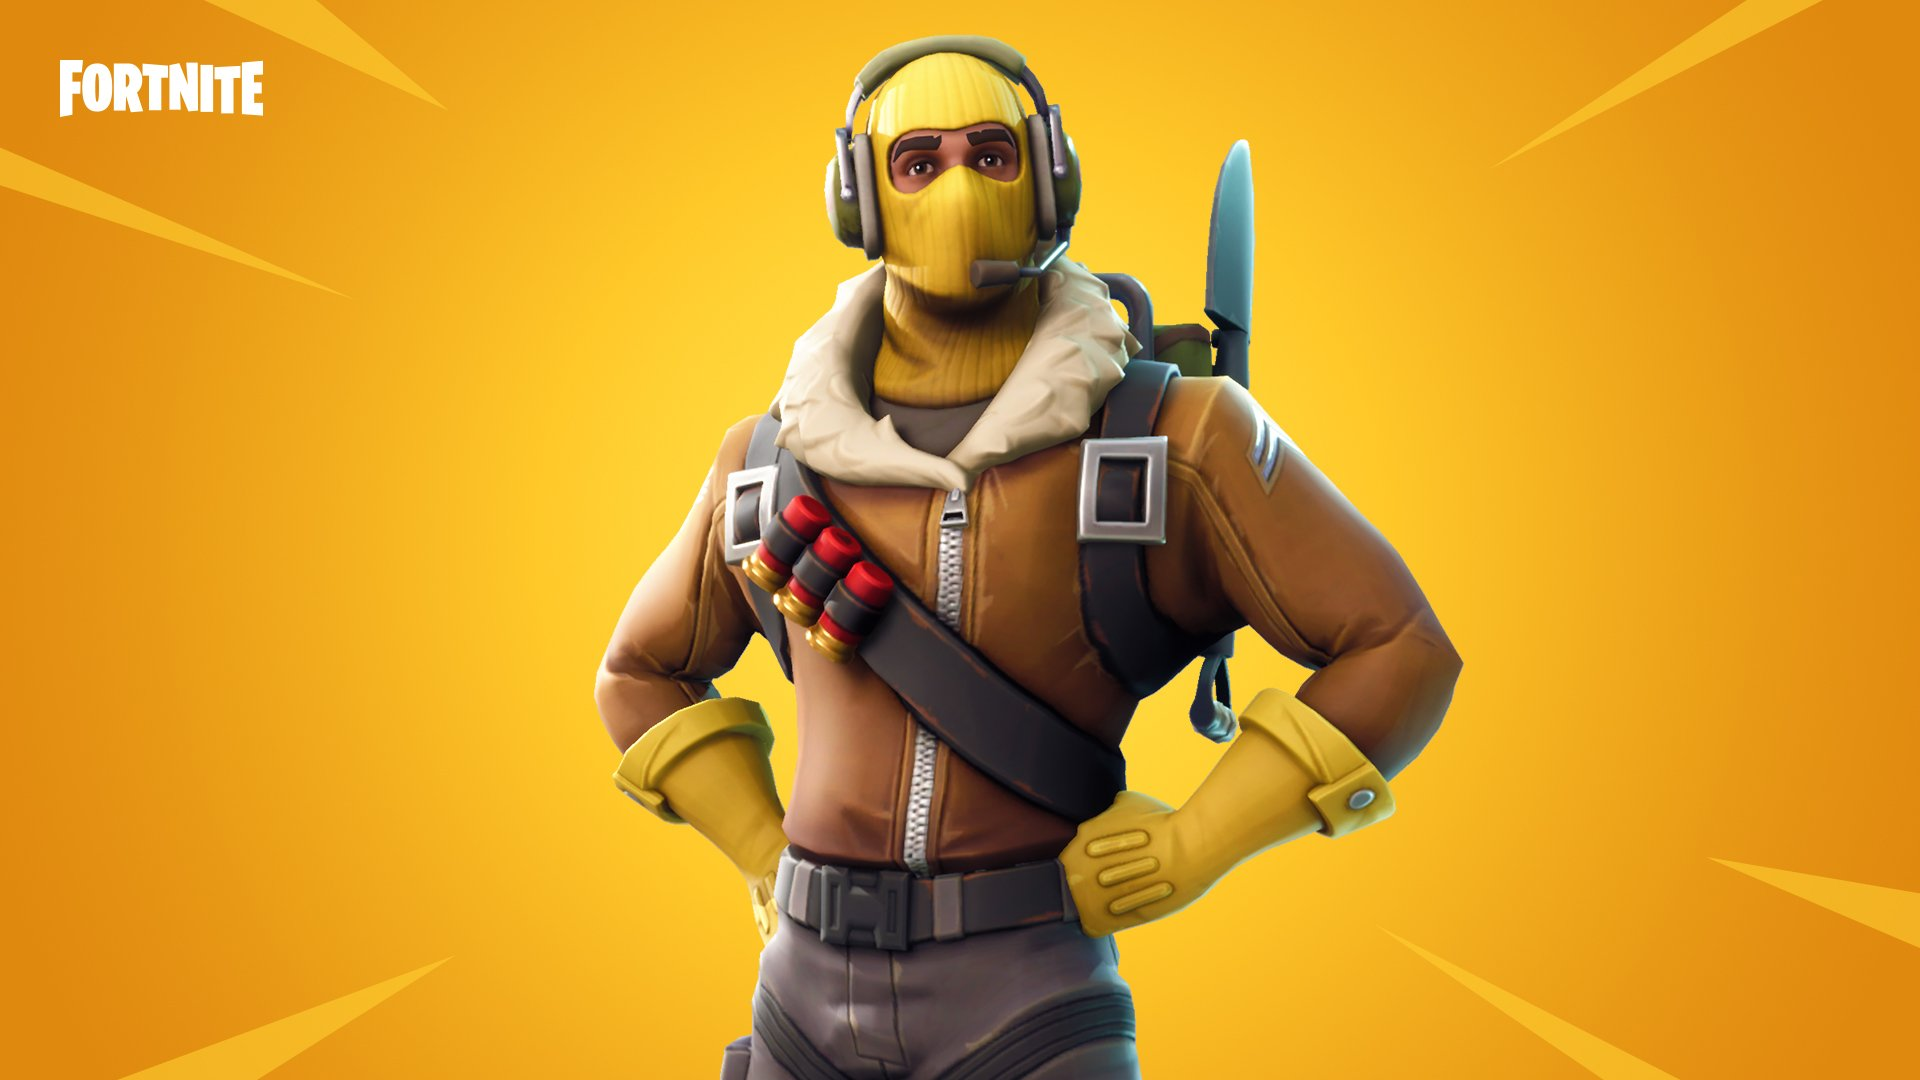 Fortnite Raptor Outfits Fortnite Skins